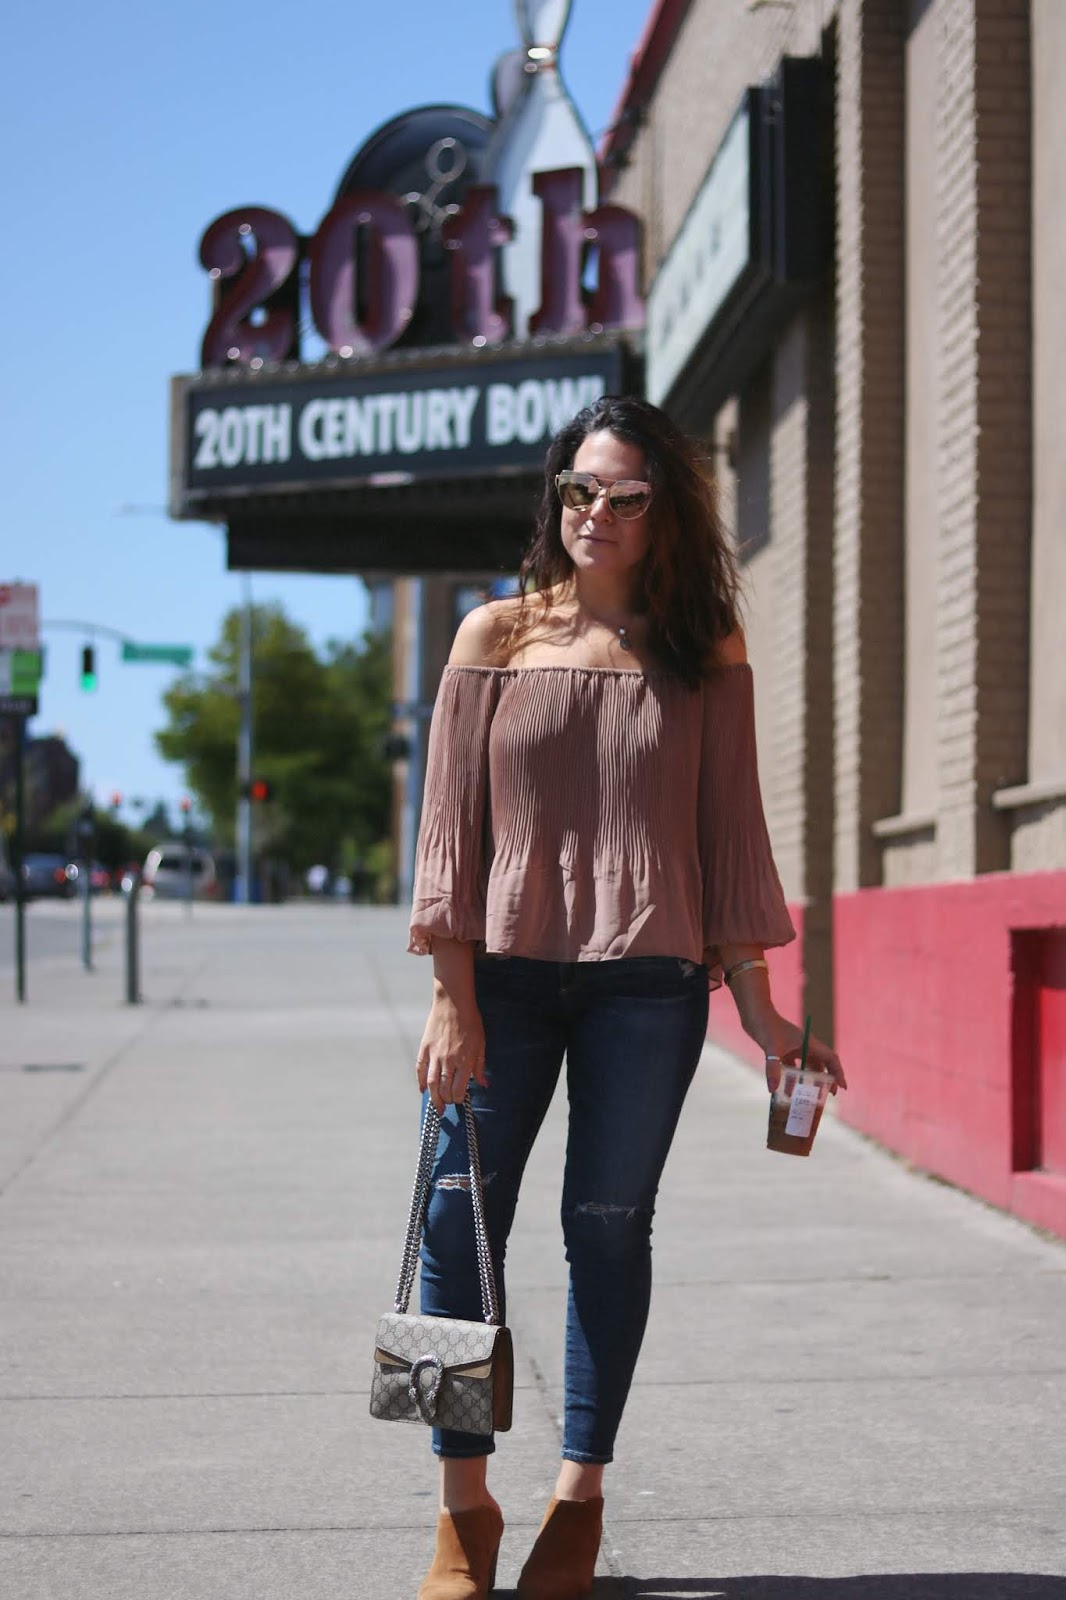 date night outfit Dynamite off the shoulder top outfit ag jeans vancouver fashion blogger gucci mini gg supreme dionysus handbag aleesha harris